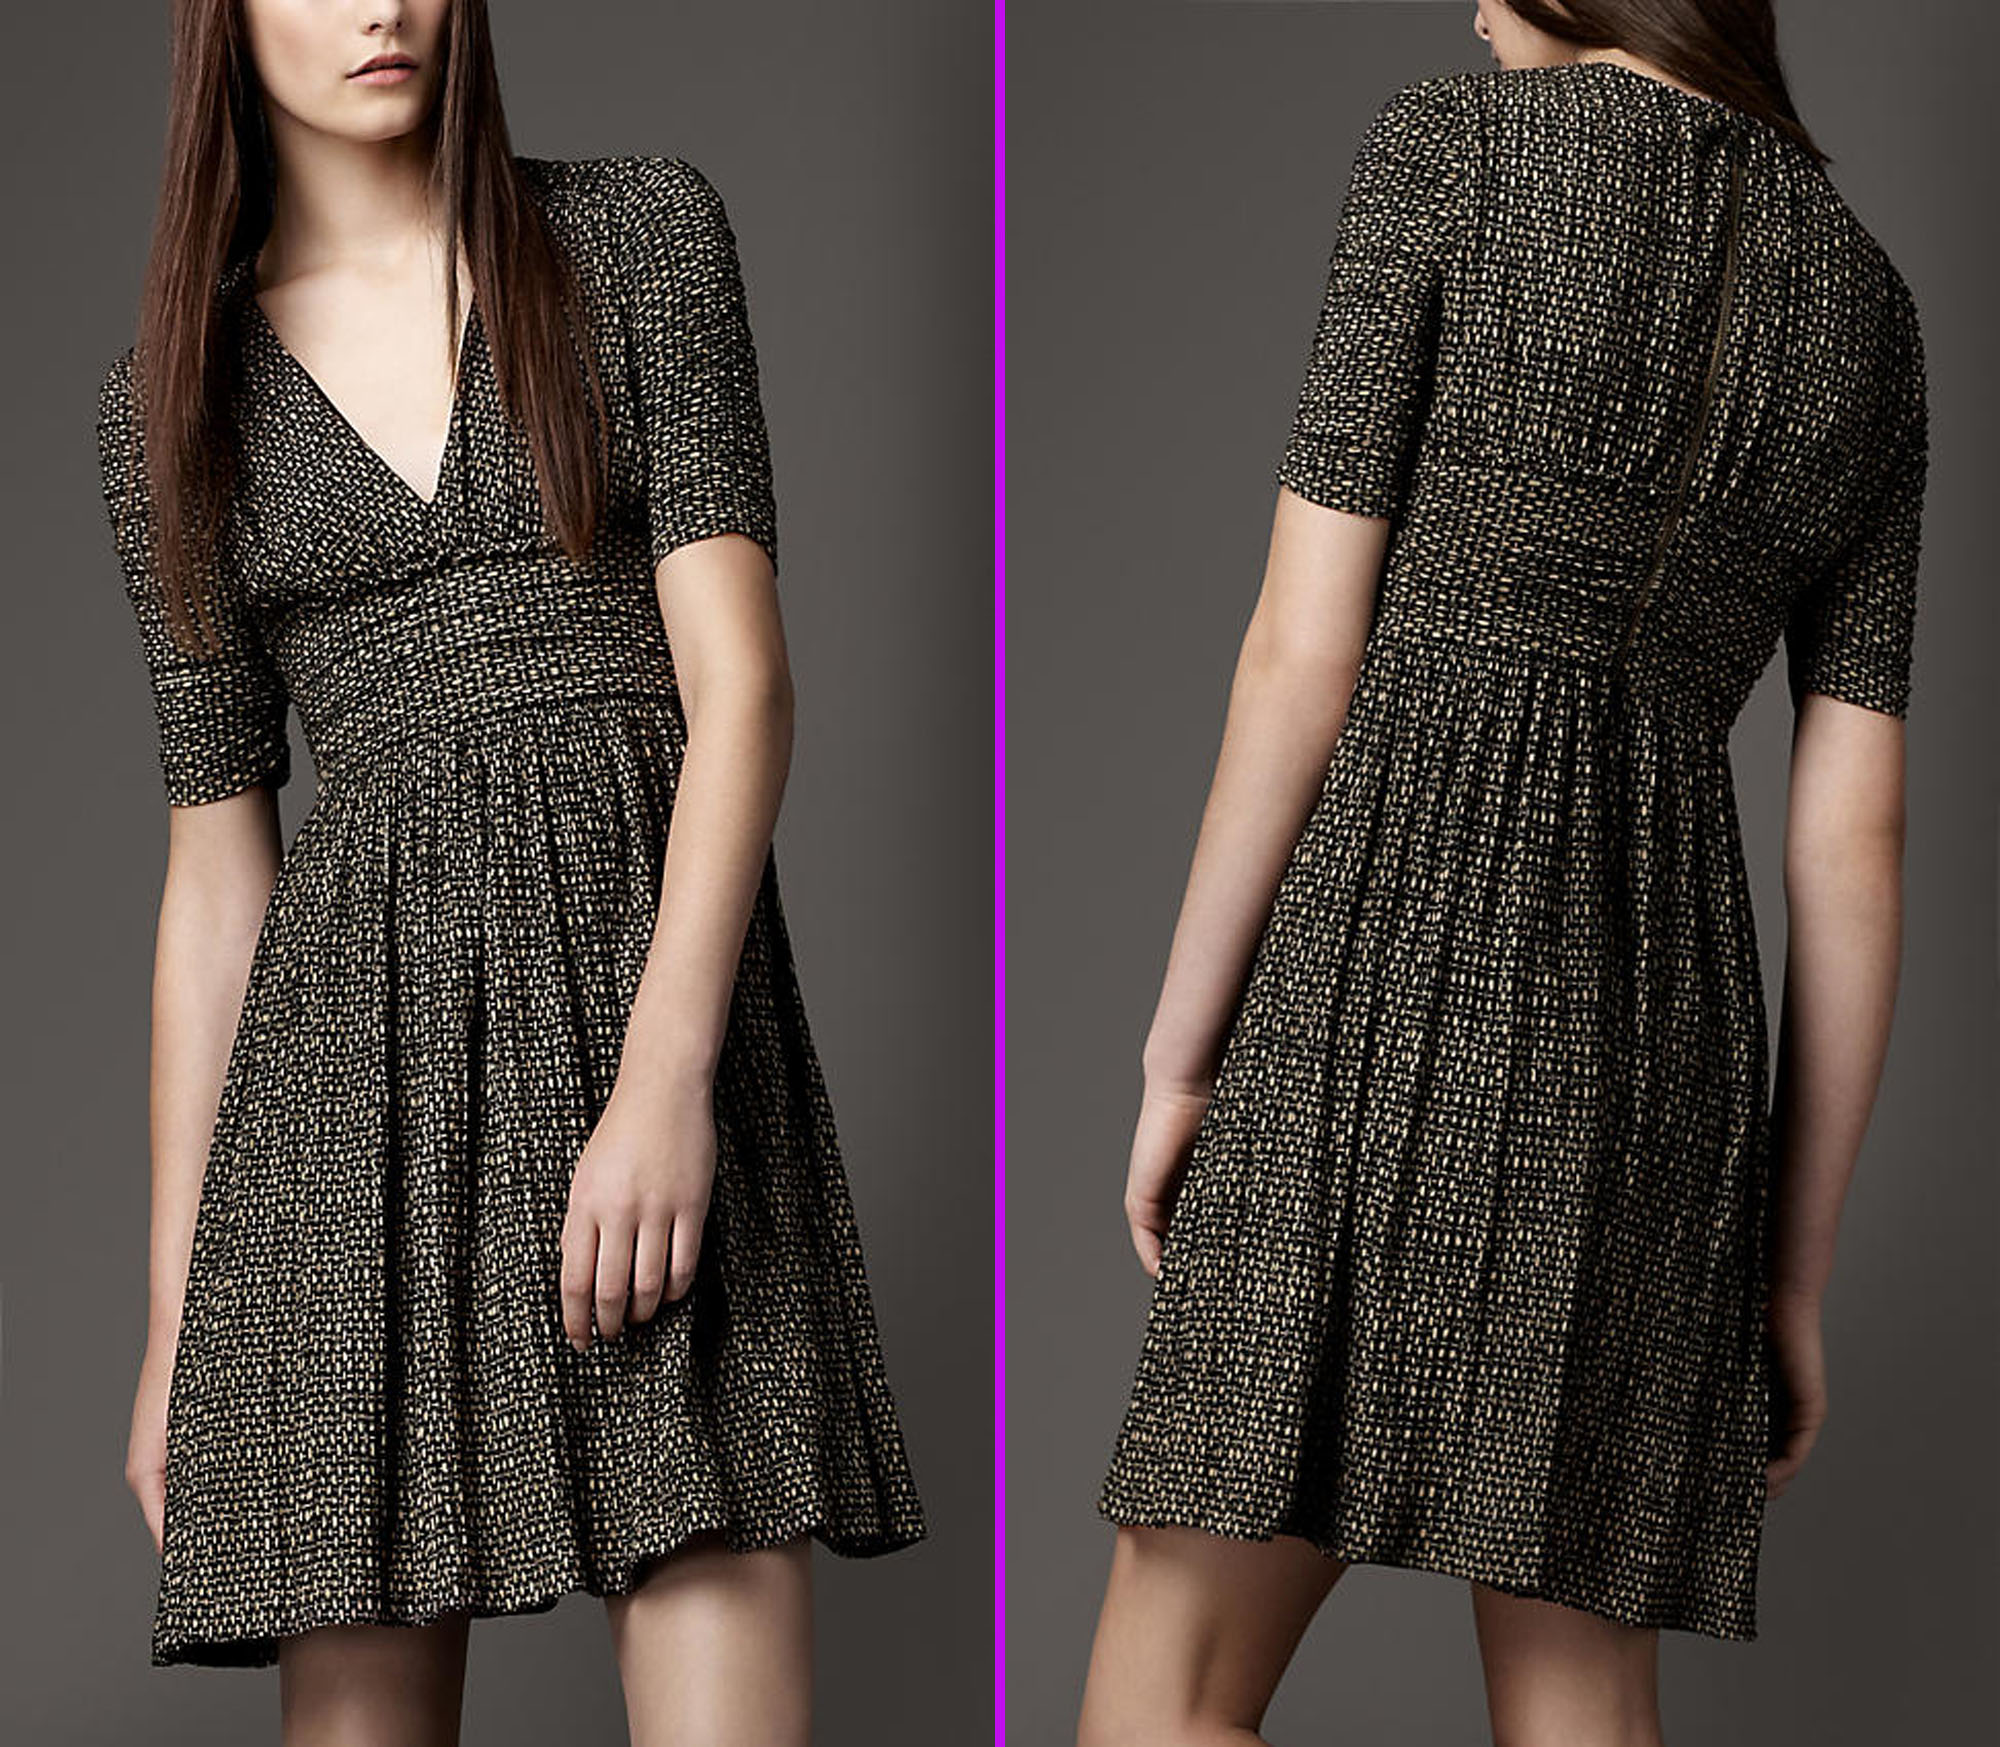 Luxury Dress for Women as Fashionable Clothes by Burberry- Fashion